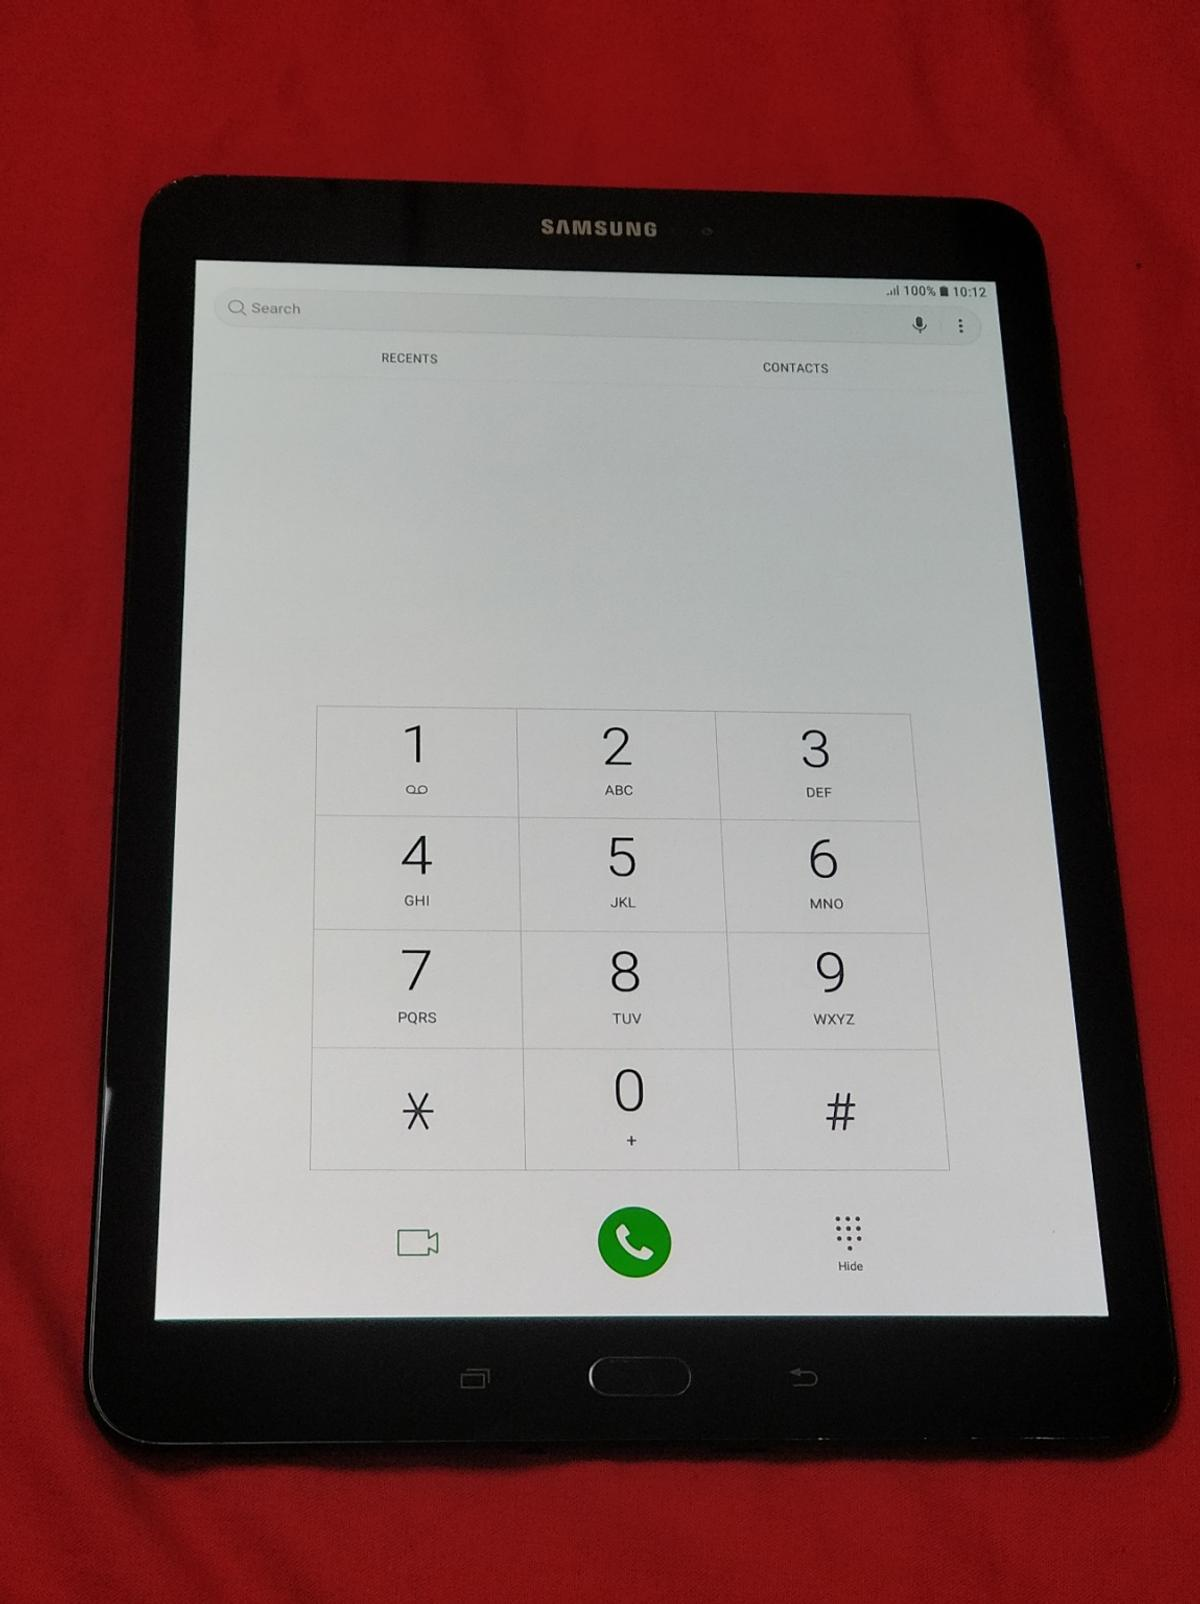 Samsung galaxy tablet S3 in L8 Liverpool for £220 00 for